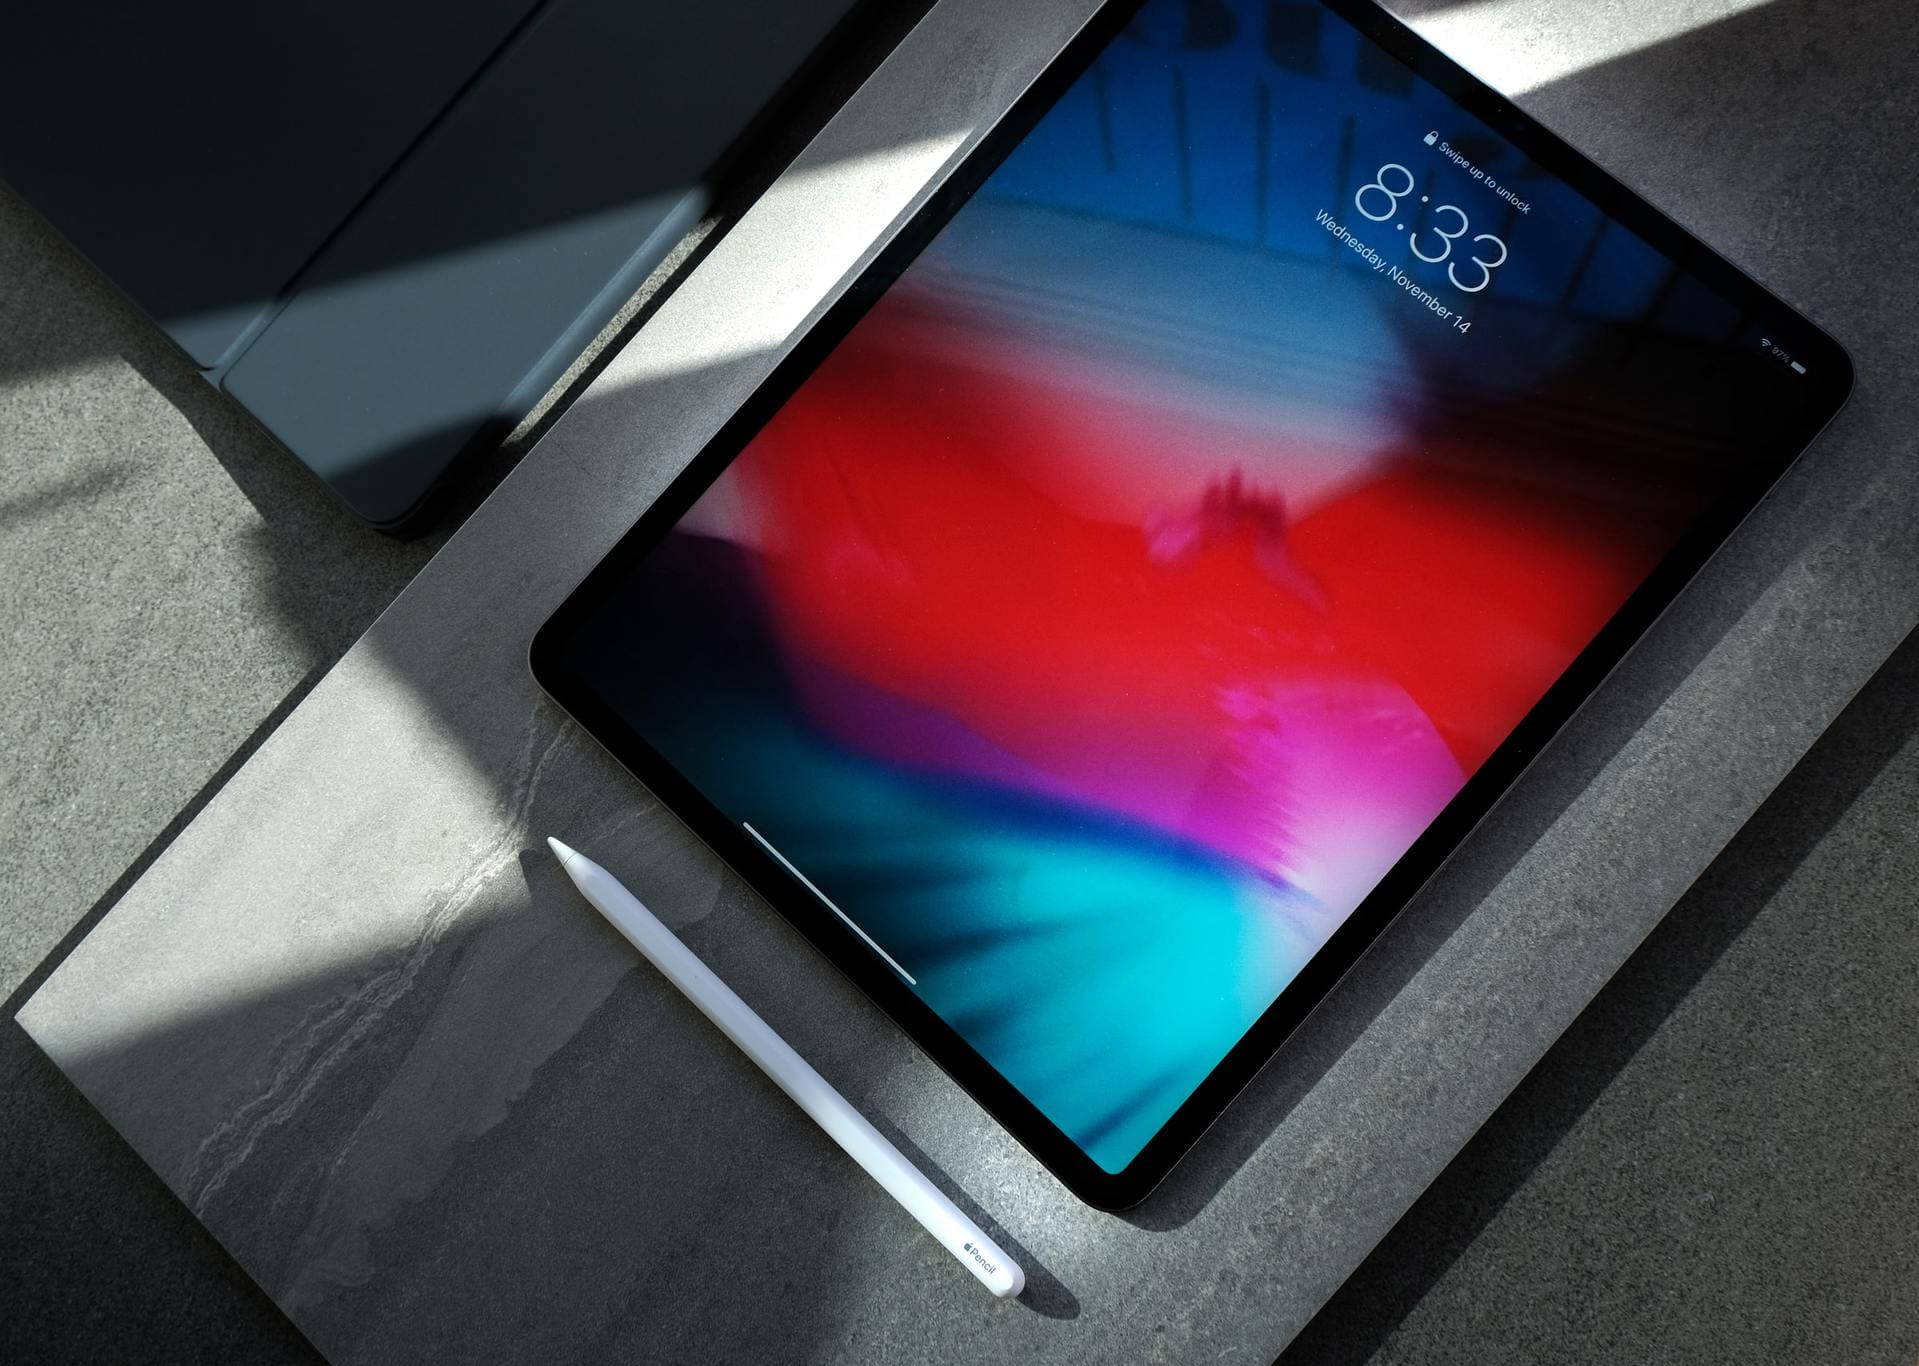 iPad revenue is up, but sales are down: Blaming M1?